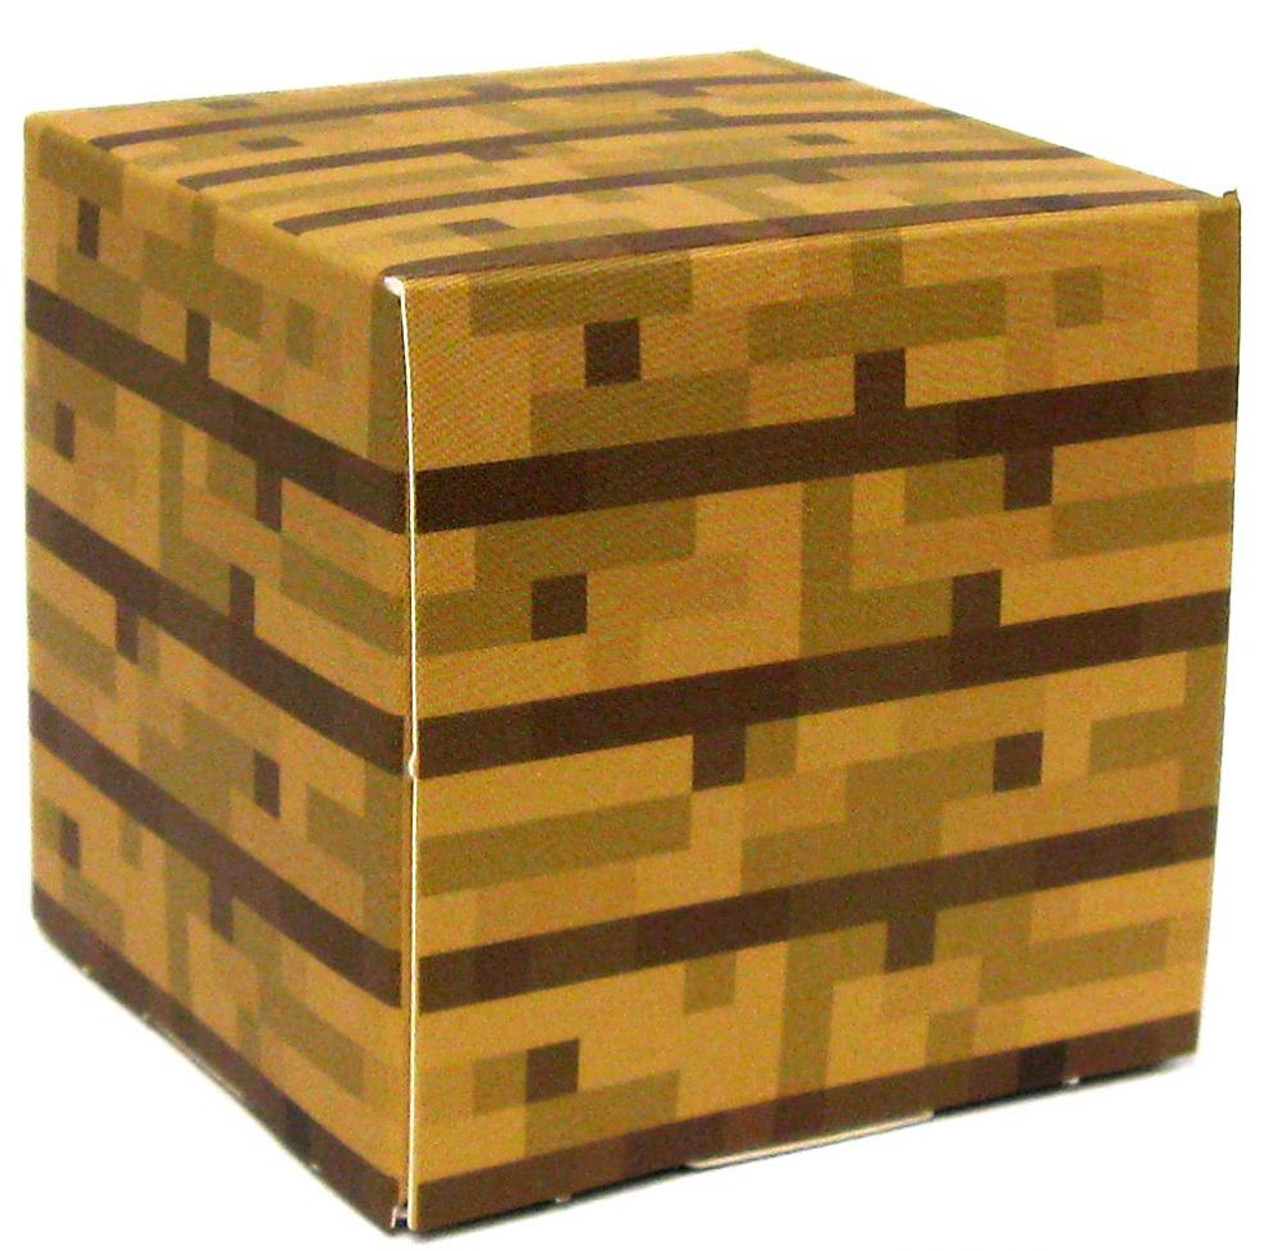 Minecraft Oak Wood ~ Minecraft wooden plank block papercraft single piece